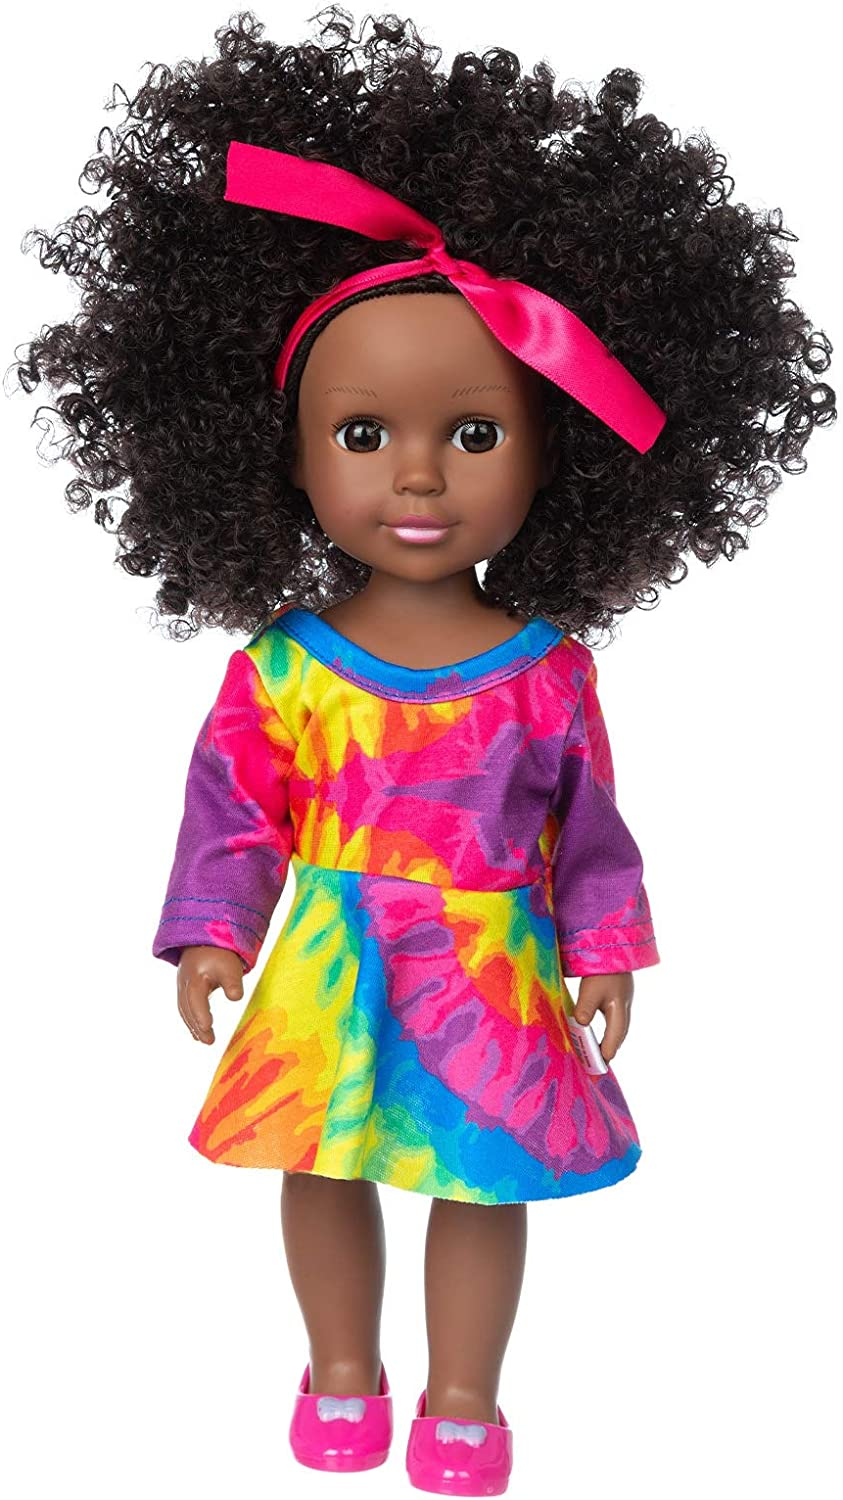 ZQDOLL Max 74% OFF Black Baby Doll 14.5 Max 89% OFF inch S and Clothes African Girl